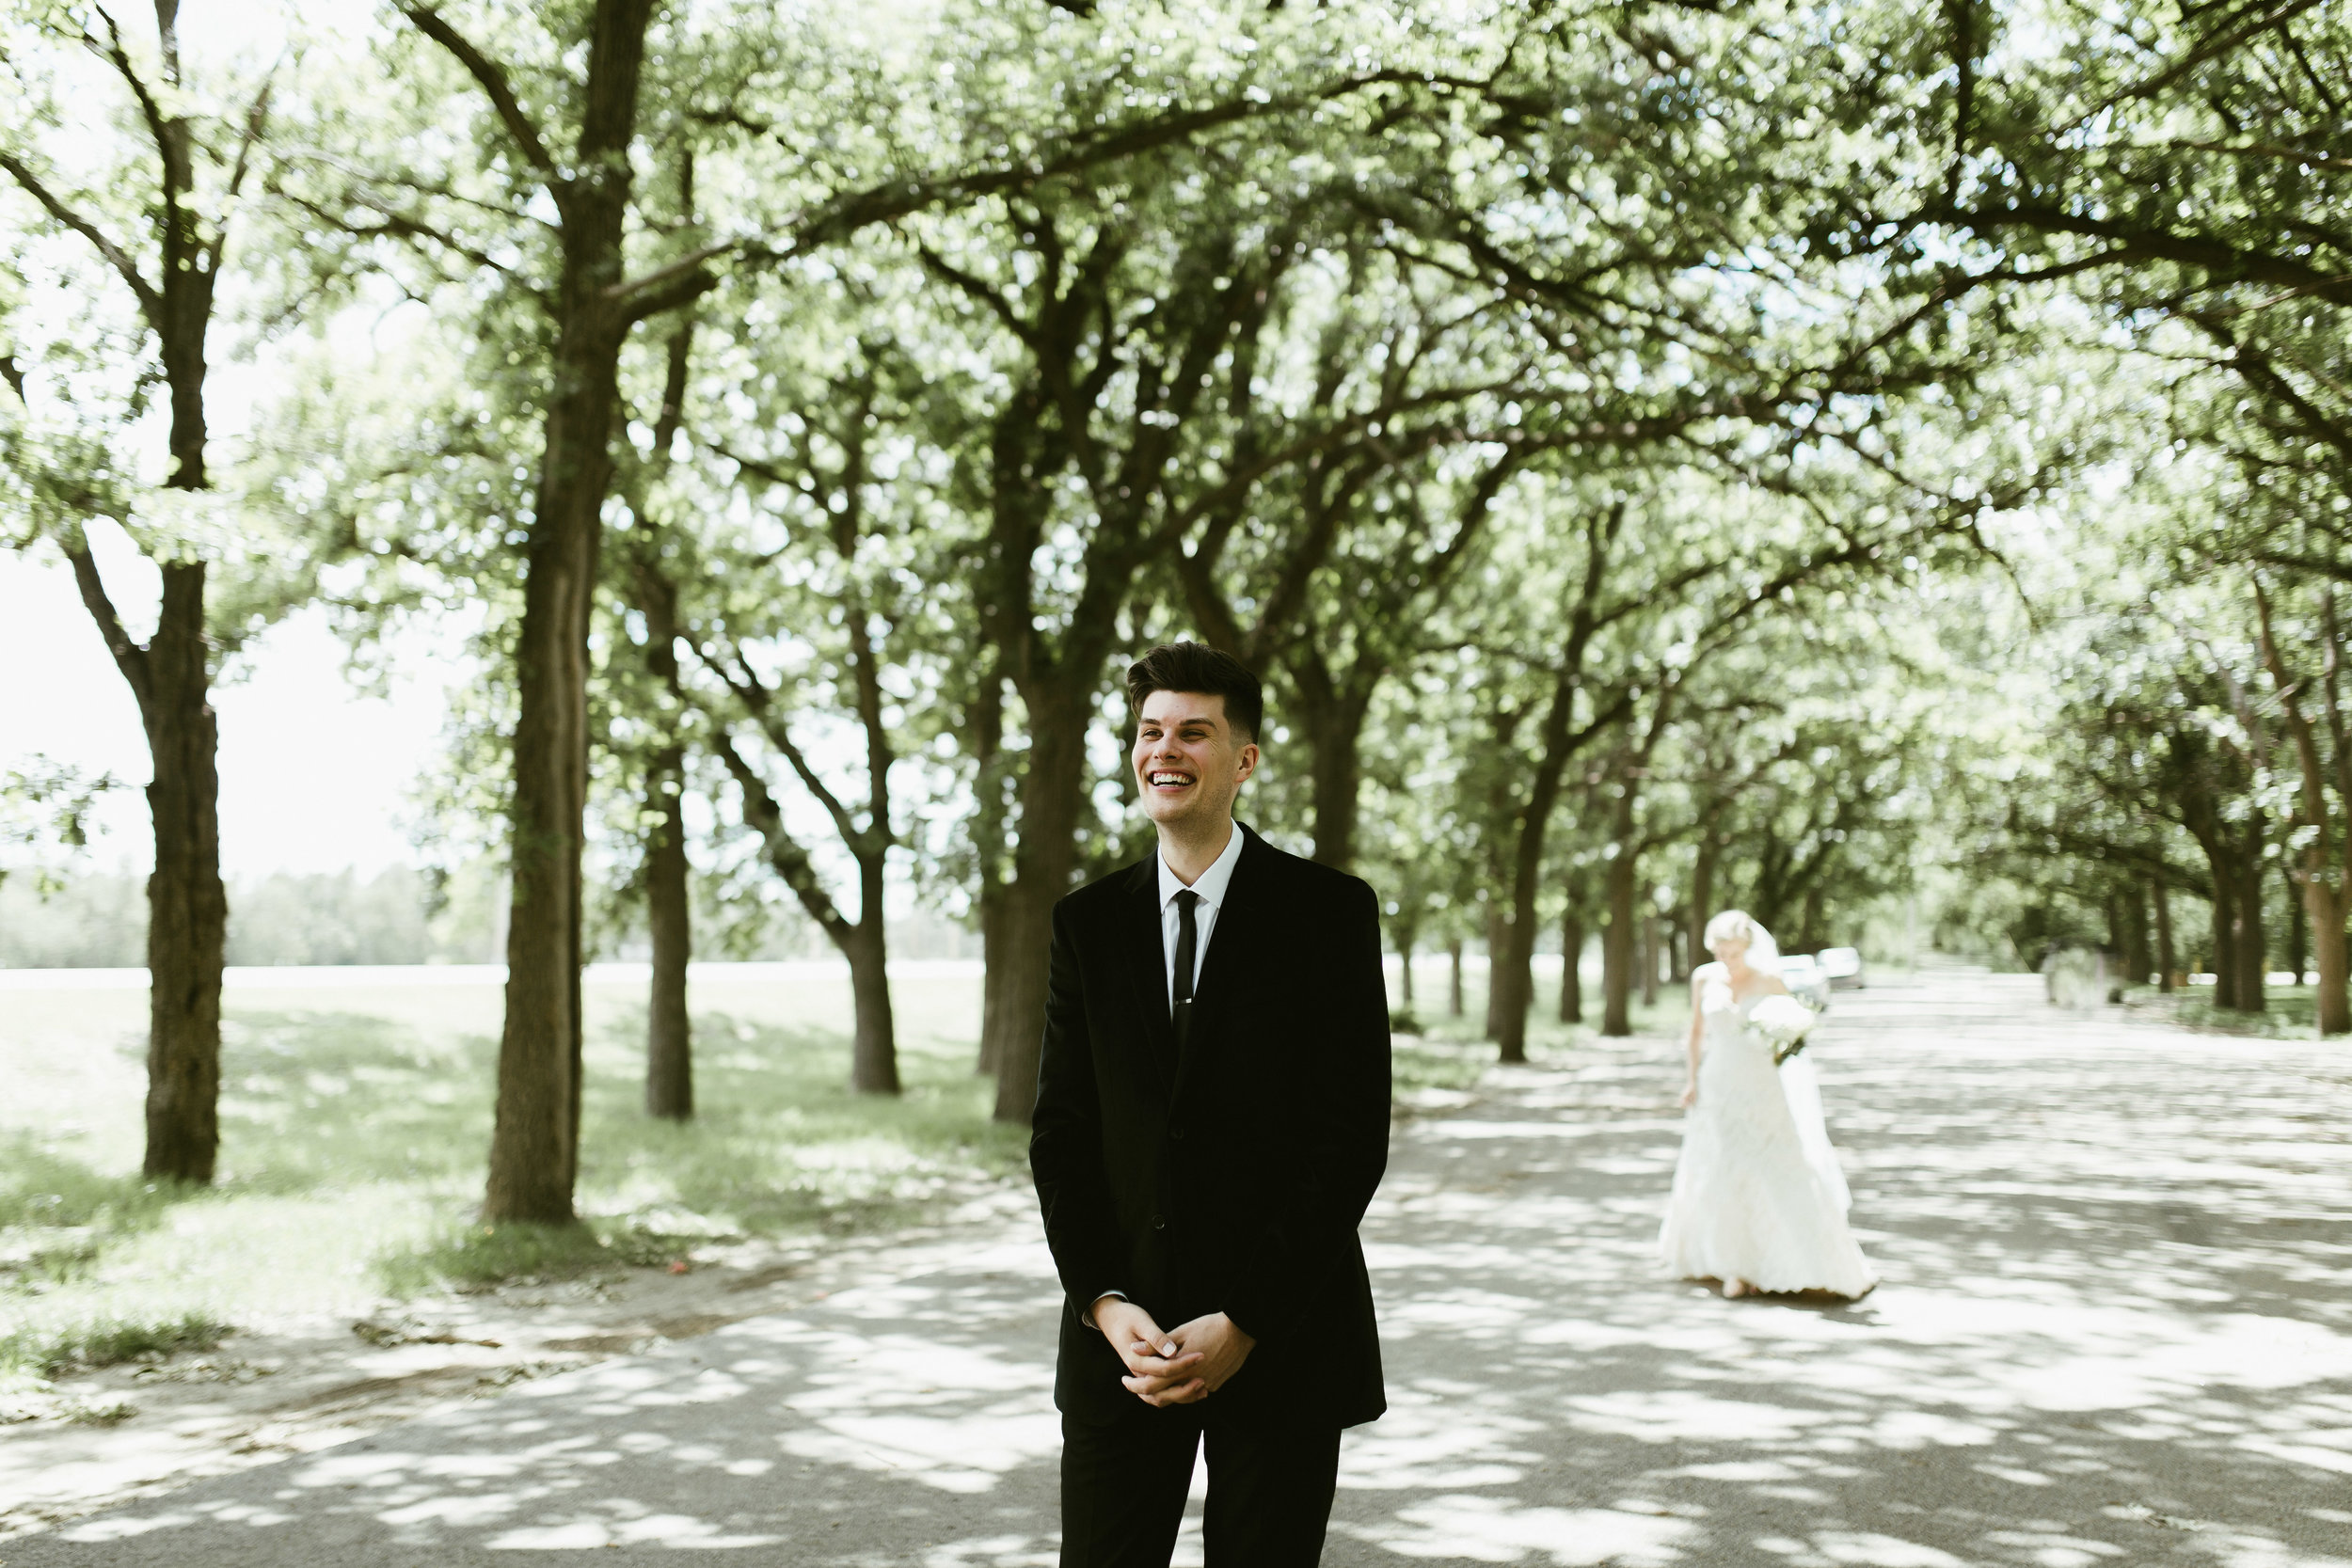 Megan&JaredMarried-161.jpg